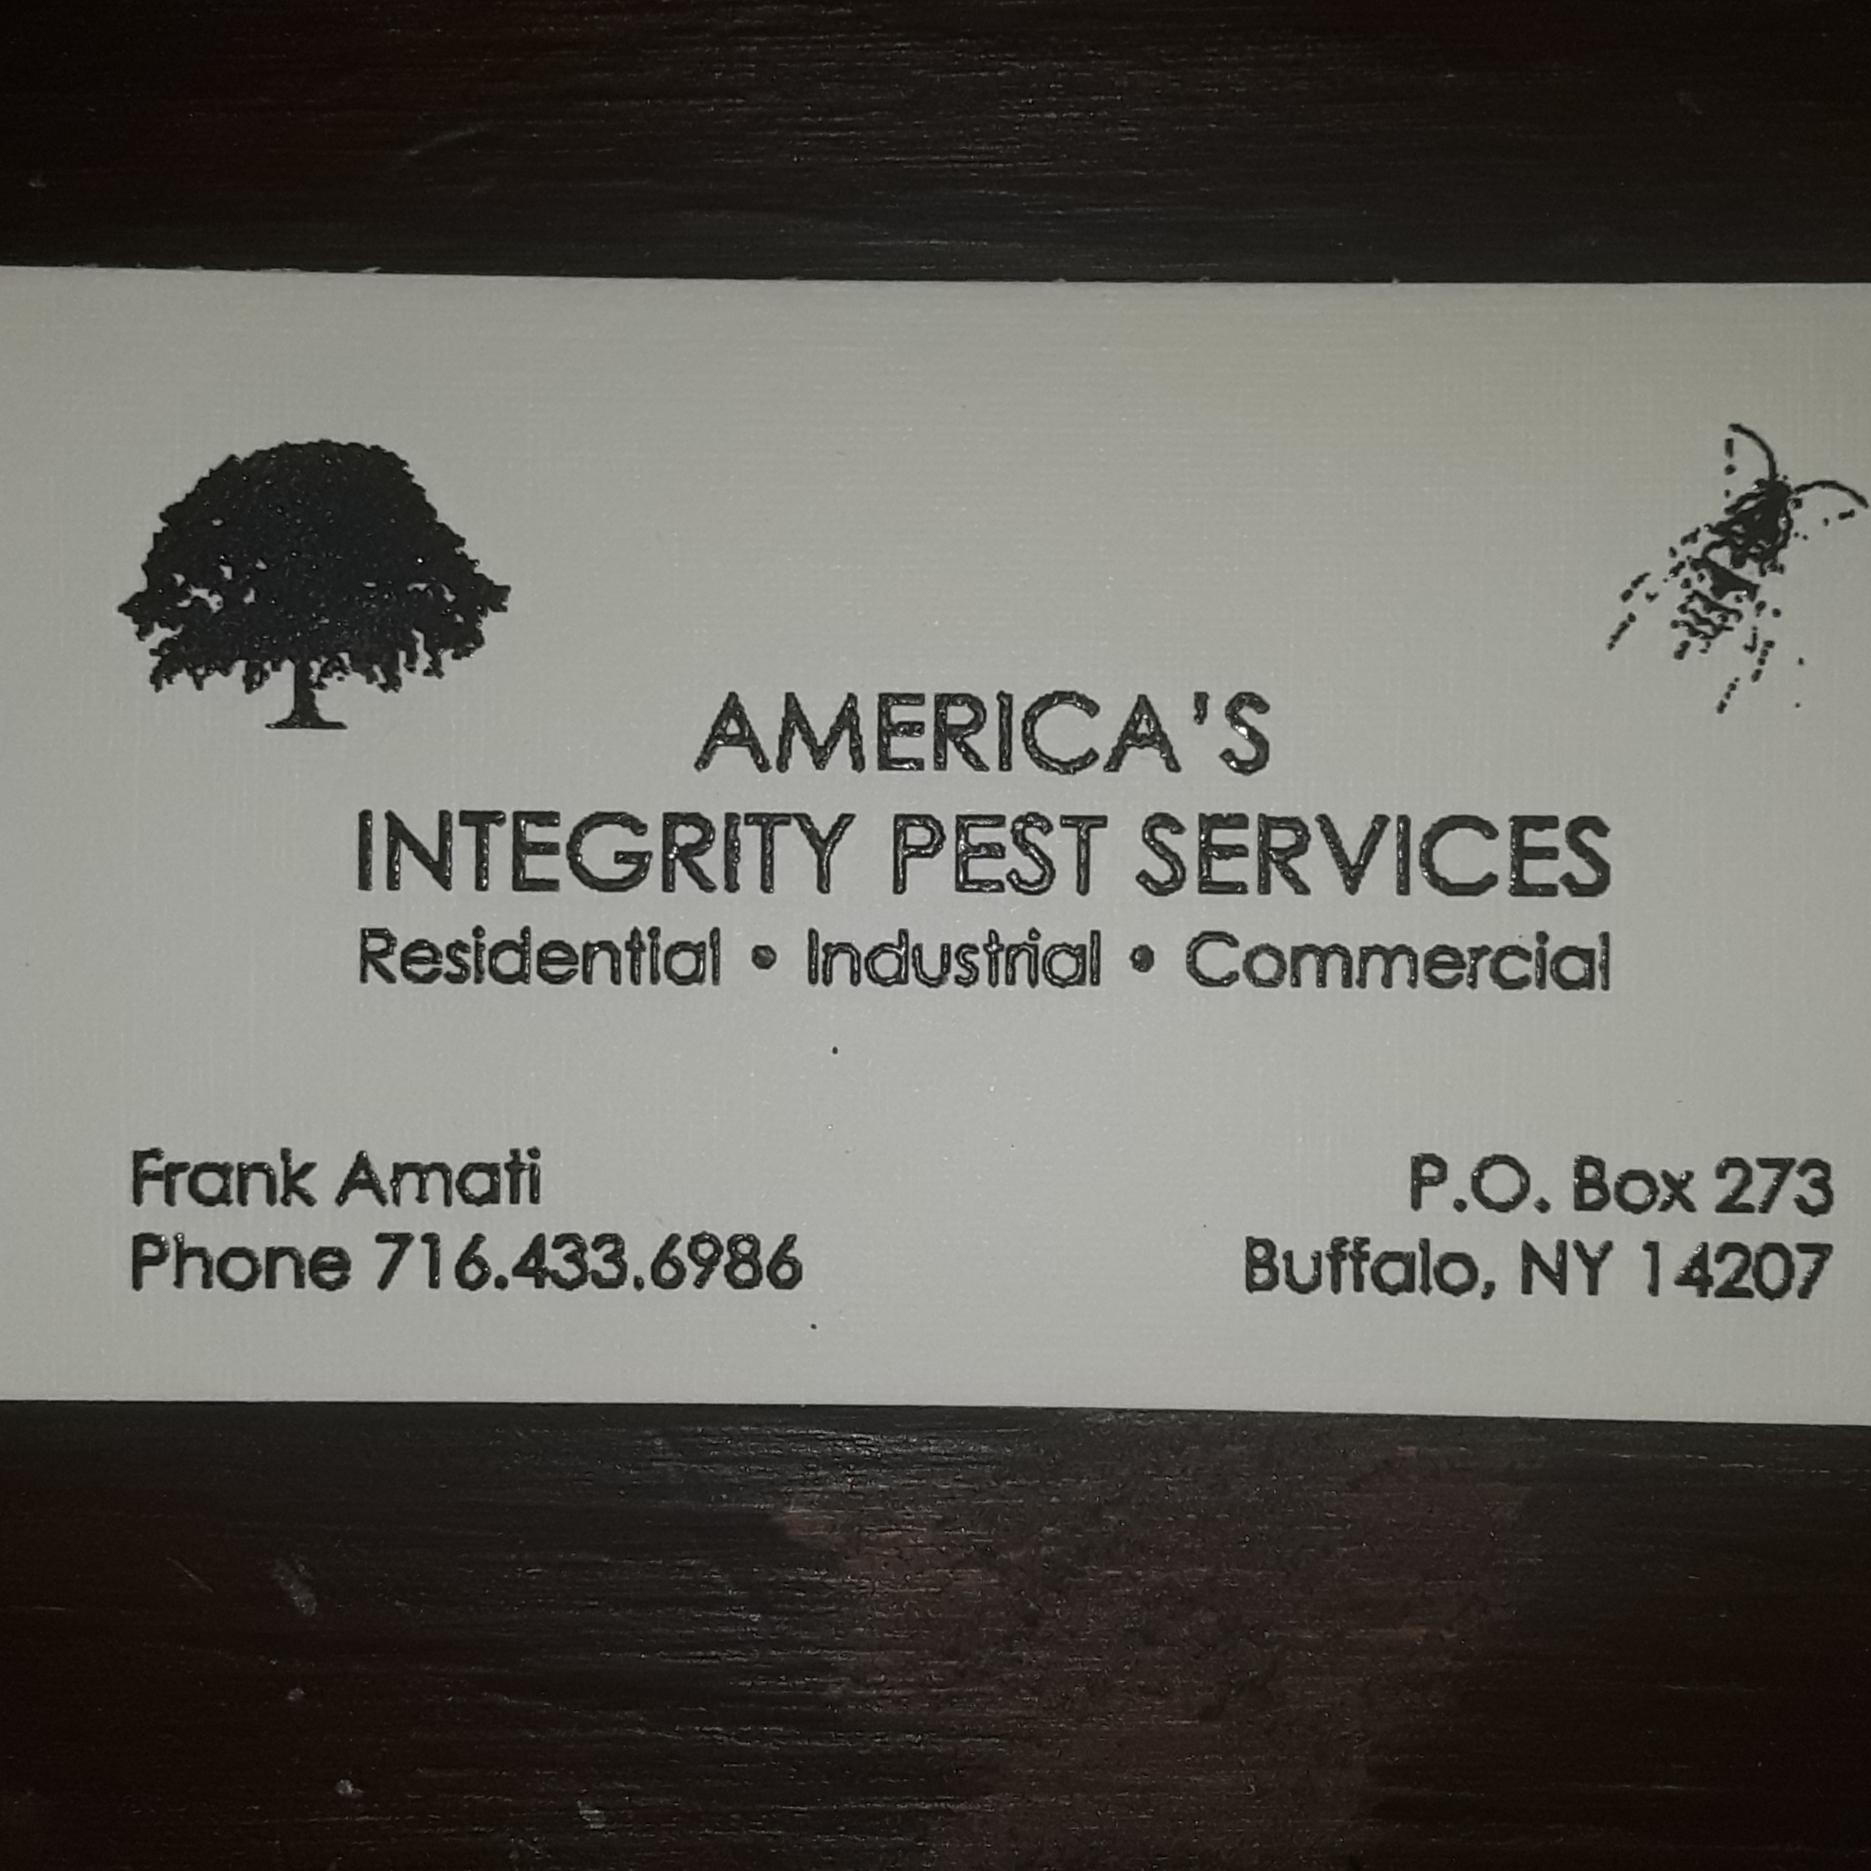 America's Integrity Pest Services